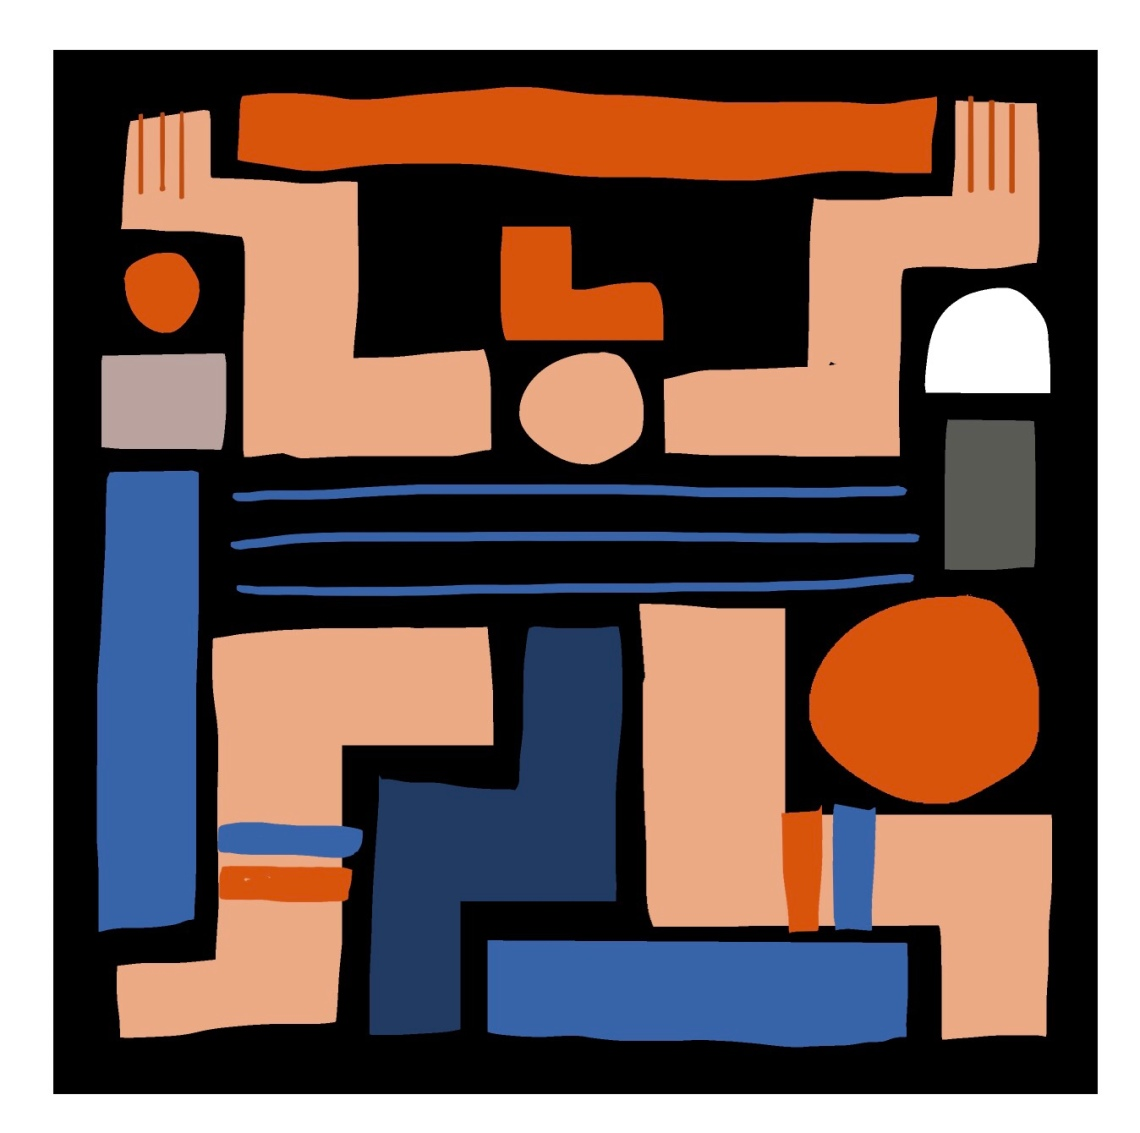 Square design digital illustration abstract geometric human figure juggling weight of the economy workers